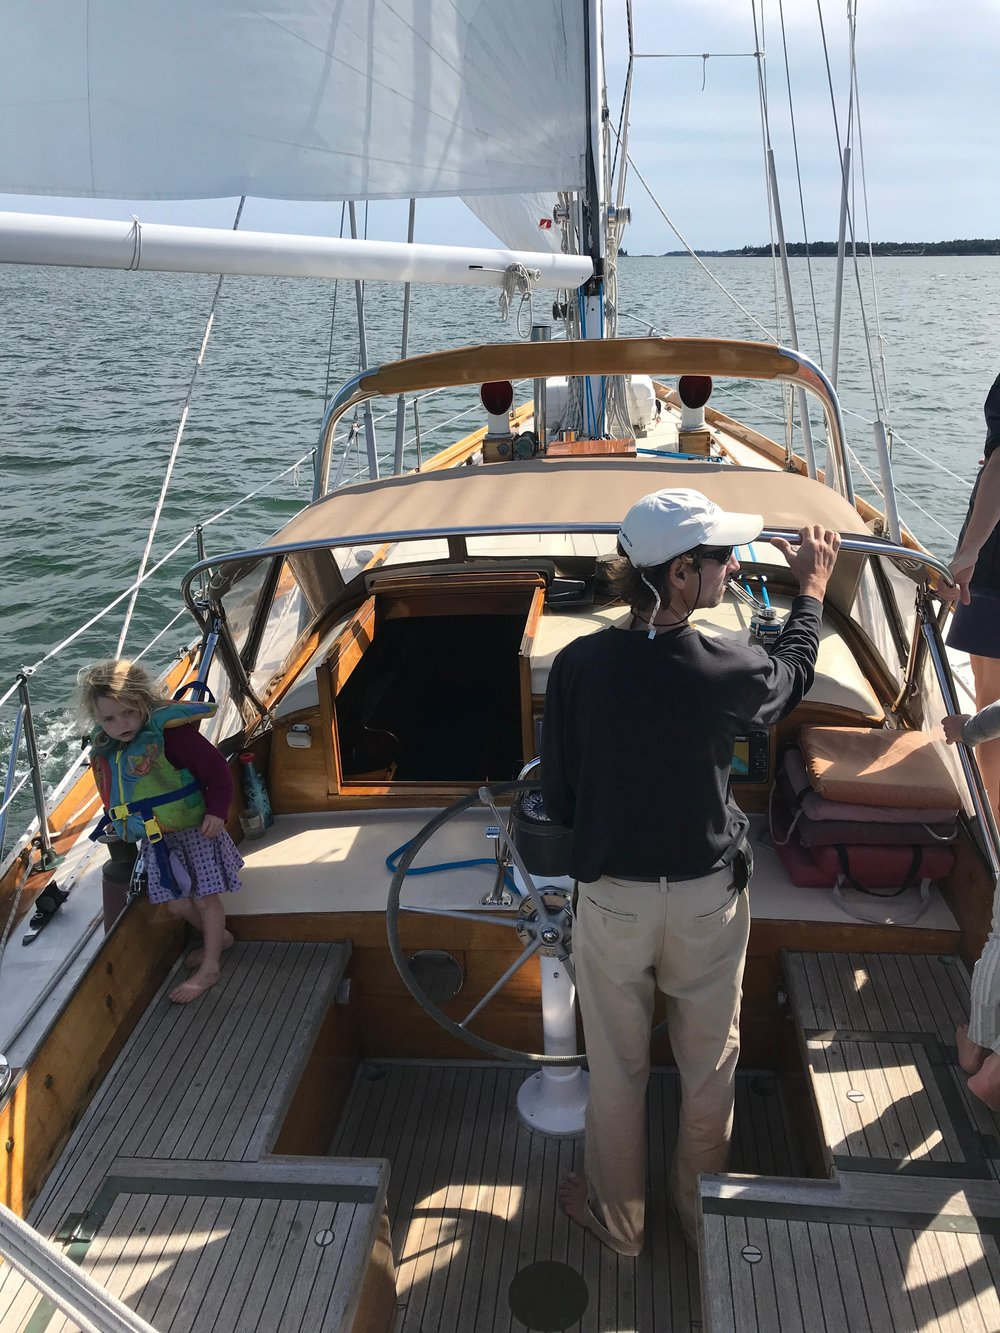 Reserve Your Time On Penobscot Bay - ELSKOV is available for charter for up to six guests, from late May through September. Book a single day, a long weekend, a week, or an extended time on the water. Please note that bookings of less than three days may only be reserved within 30 days of sailing. Charters of three days or longer may be booked up to a year in advance. To begin planning your adventure, please click the contact link and send us a note describing your wishes.Rates:$900/day$5,200/weekAdditional discounts are available for multiple-week bookings.Captains charge $300/day.